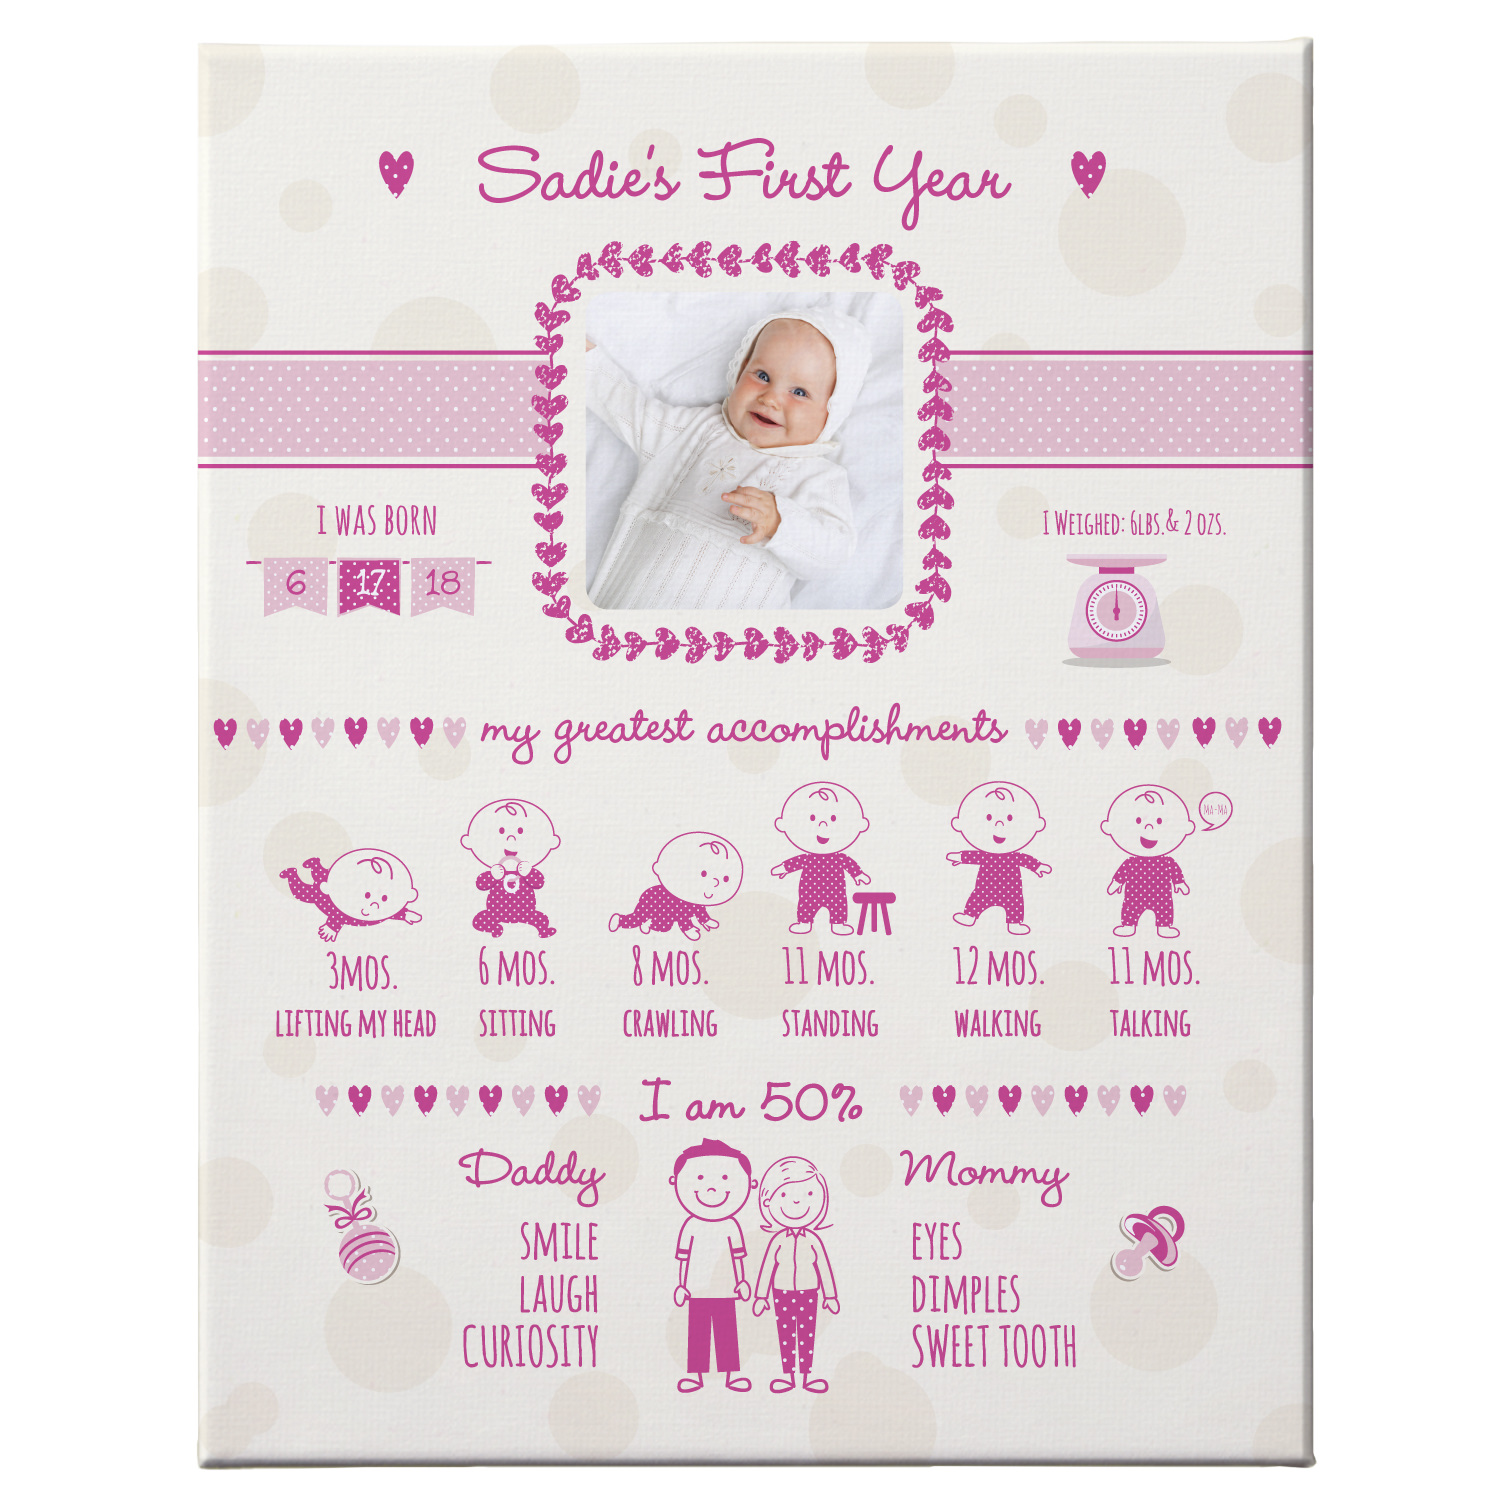 Personalized Baby Timeline Photo Canvas - Available in Blue or Pink and 2 Sizes